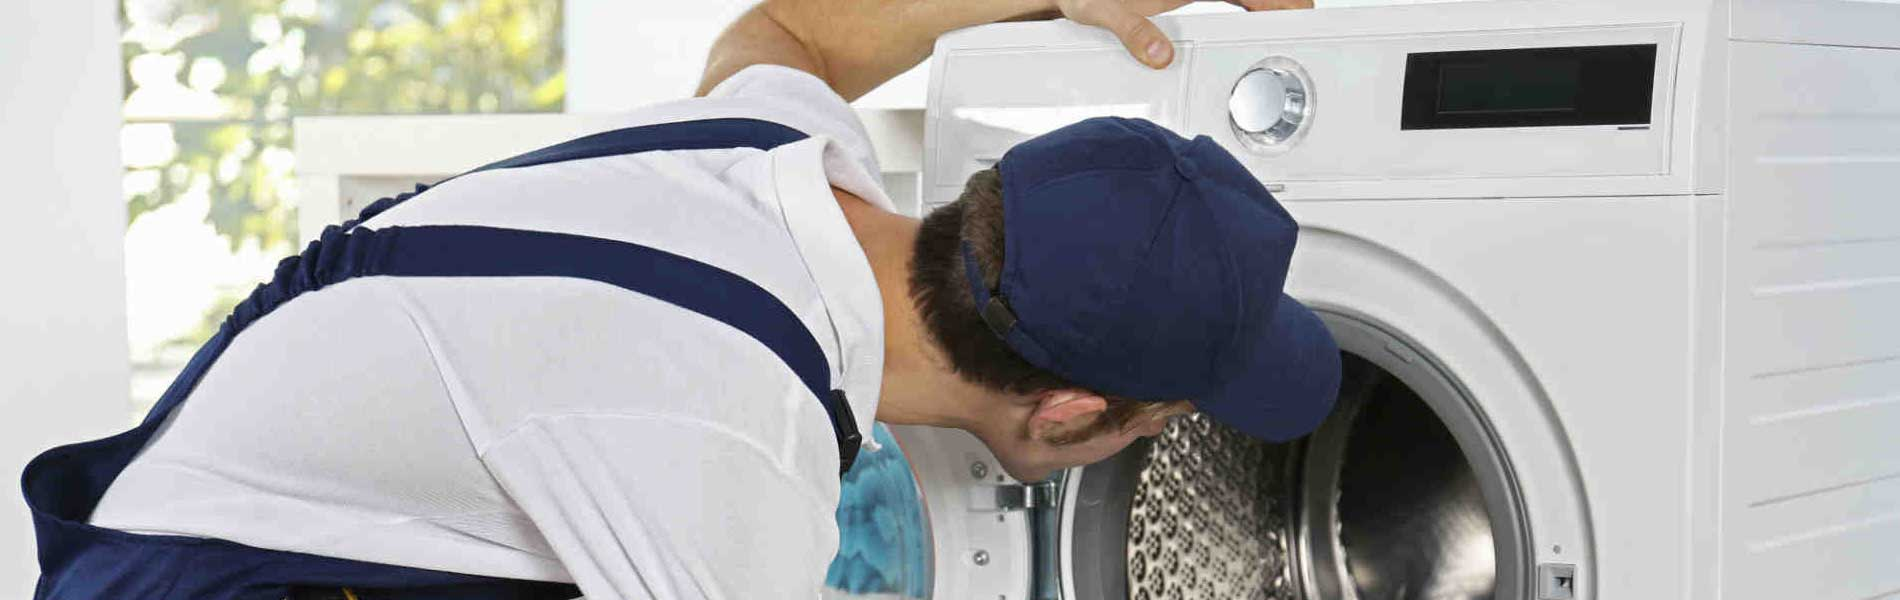 Onida Washing Machine Mechanic in Ambattur